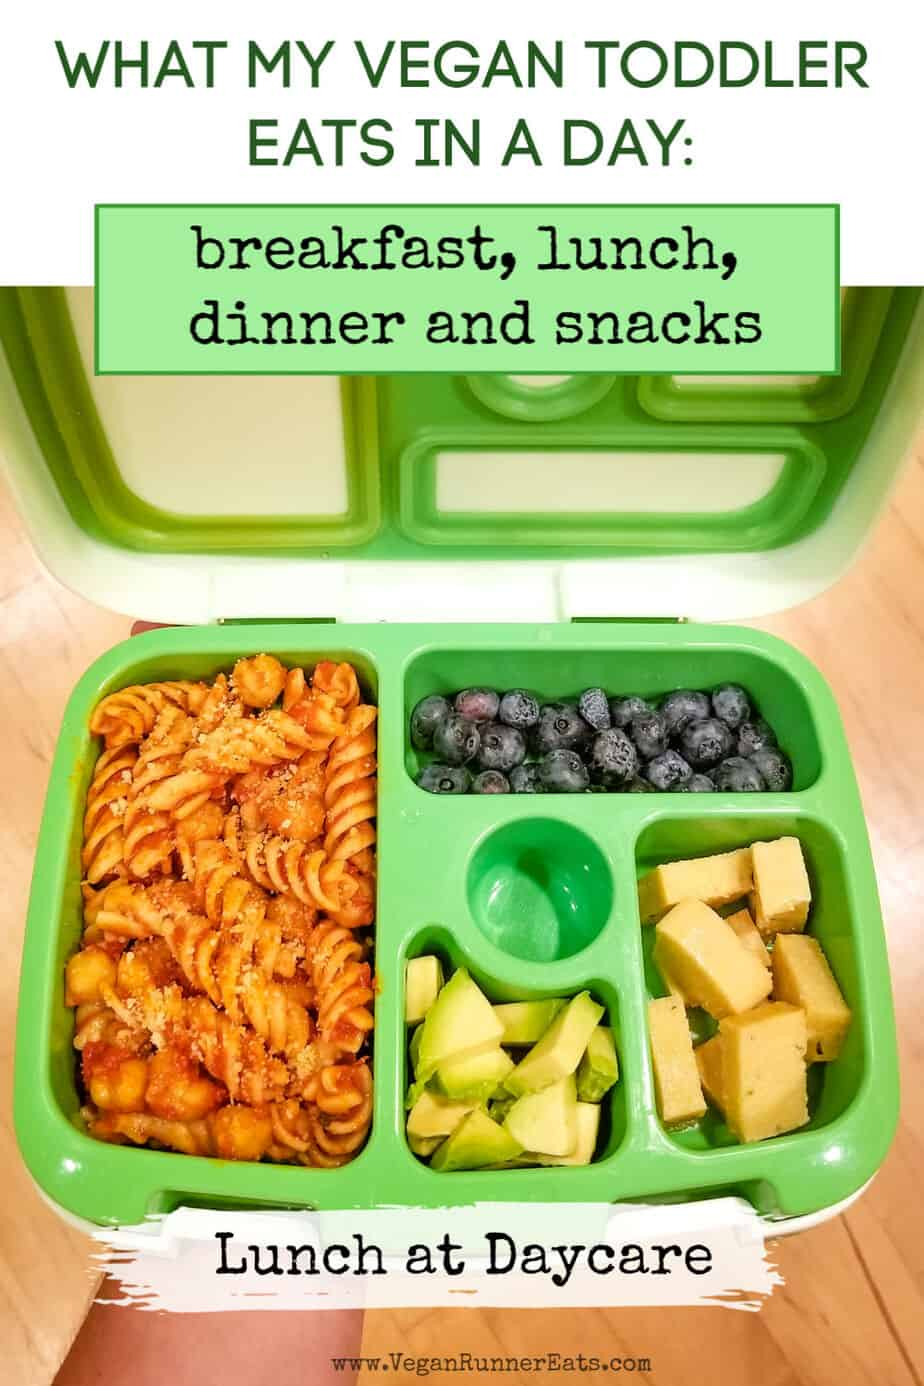 What my vegan kid eats in a day: an example of my vegan toddler's menu for a day, including breakfast, lunch, dinner and snacks.   Vegan Runner Eats